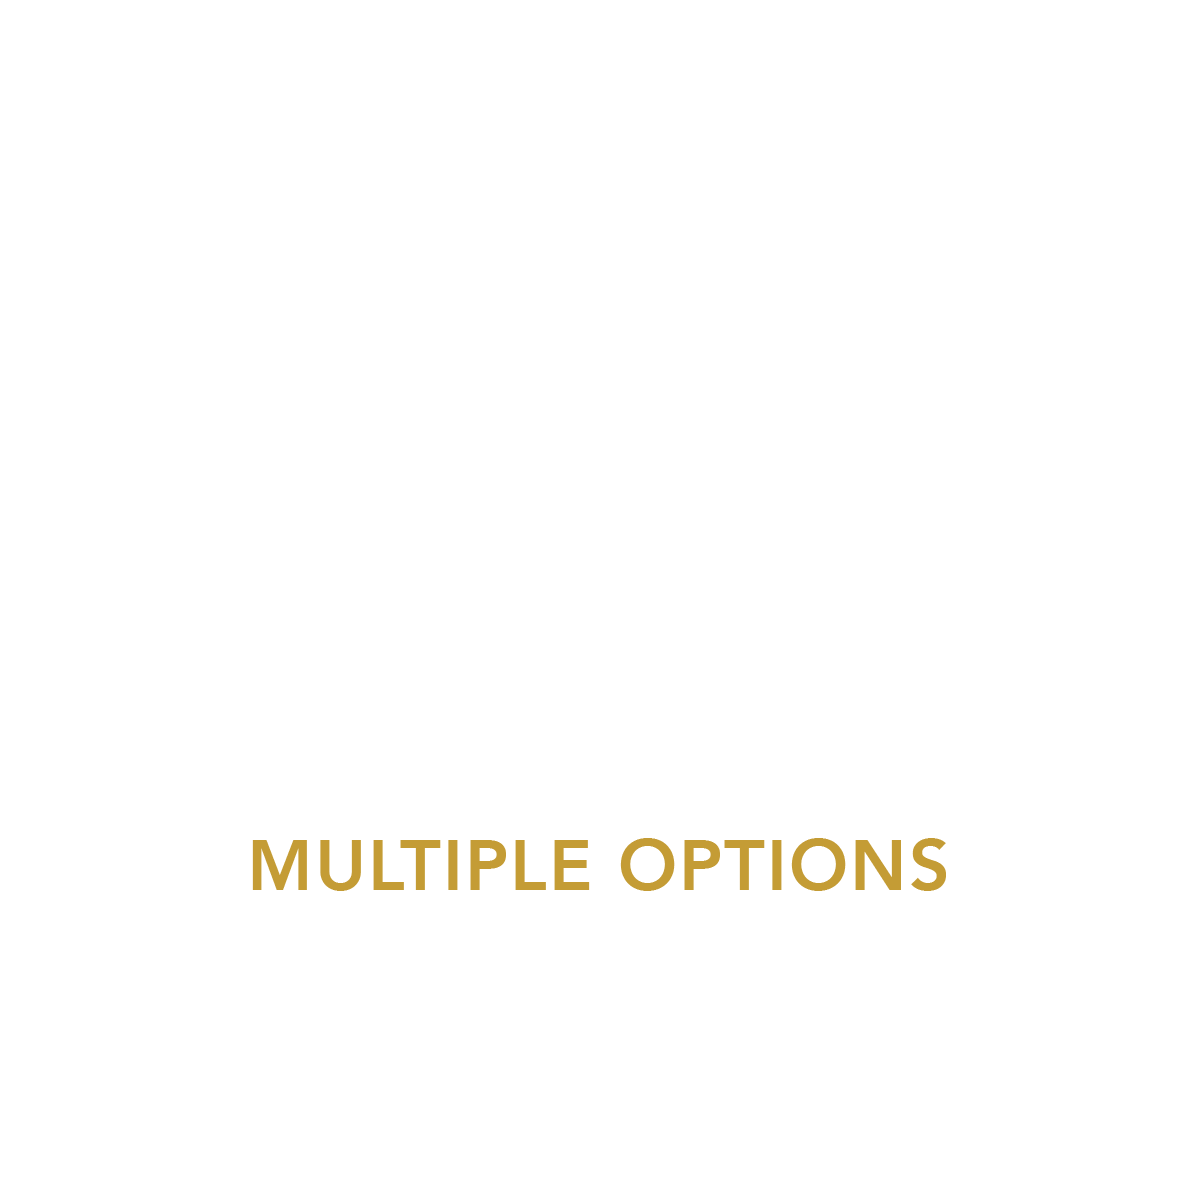 Meals provided for two